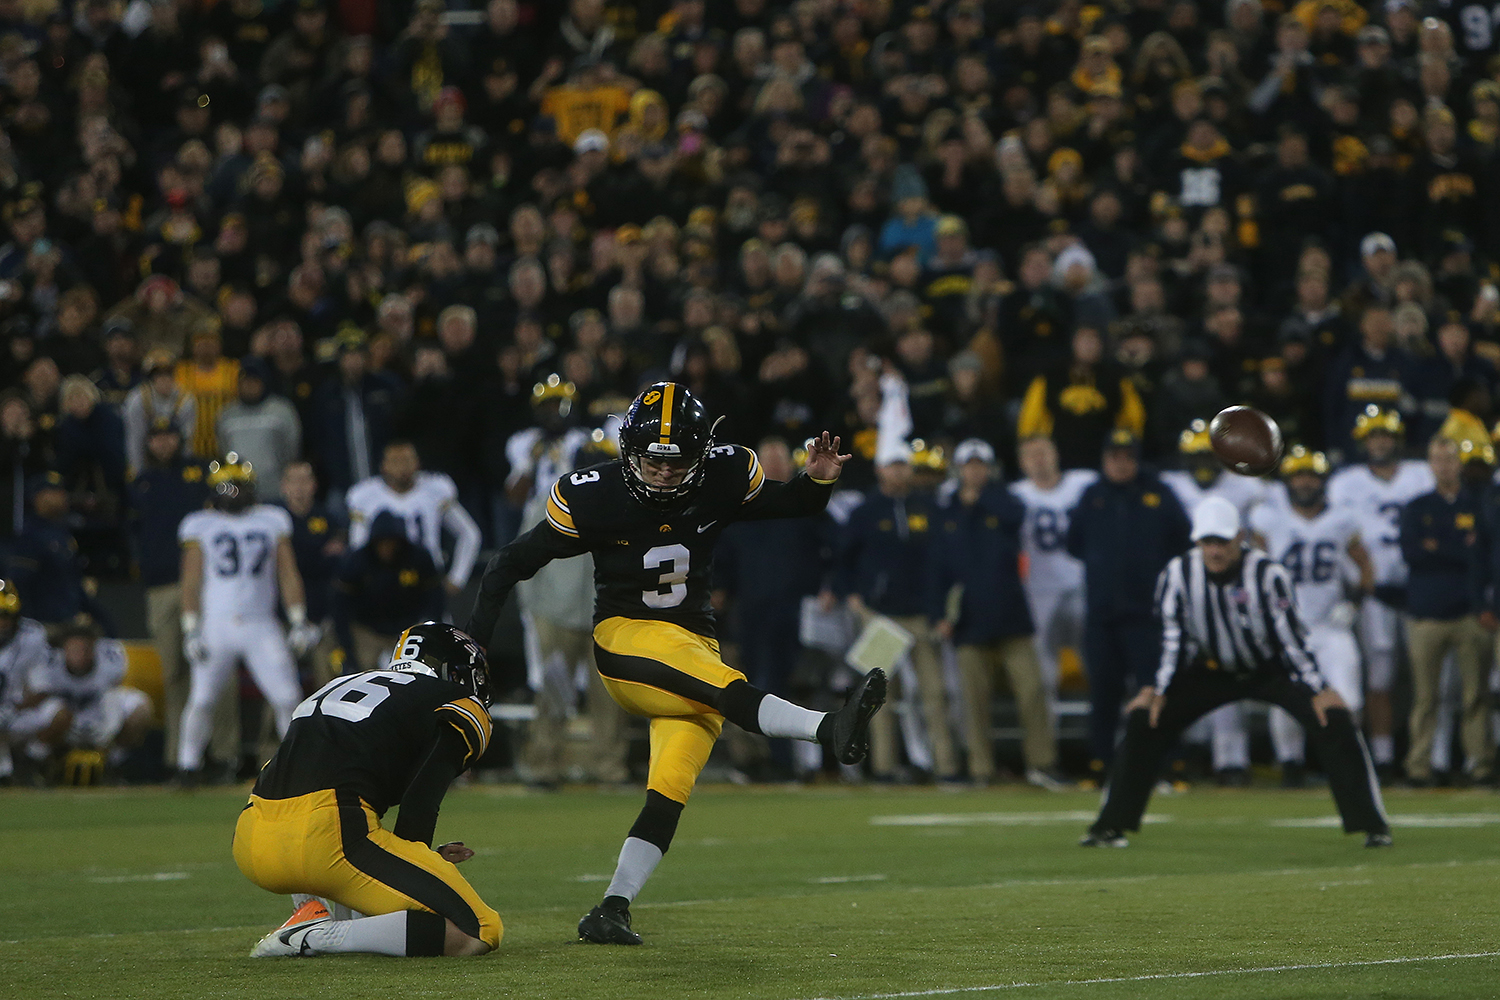 Iowa kicker Keith Duncan kicks the game winning field goal with no seconds left of the Iowa-Michigan game at Kinnick on Saturday, Nov. 12, 2016. The Hawkeyes defeated No. 2 Michigan by a 33-yard field goal with no time left to win, 14-13. (The Daily Iowan/Margaret Kispert)